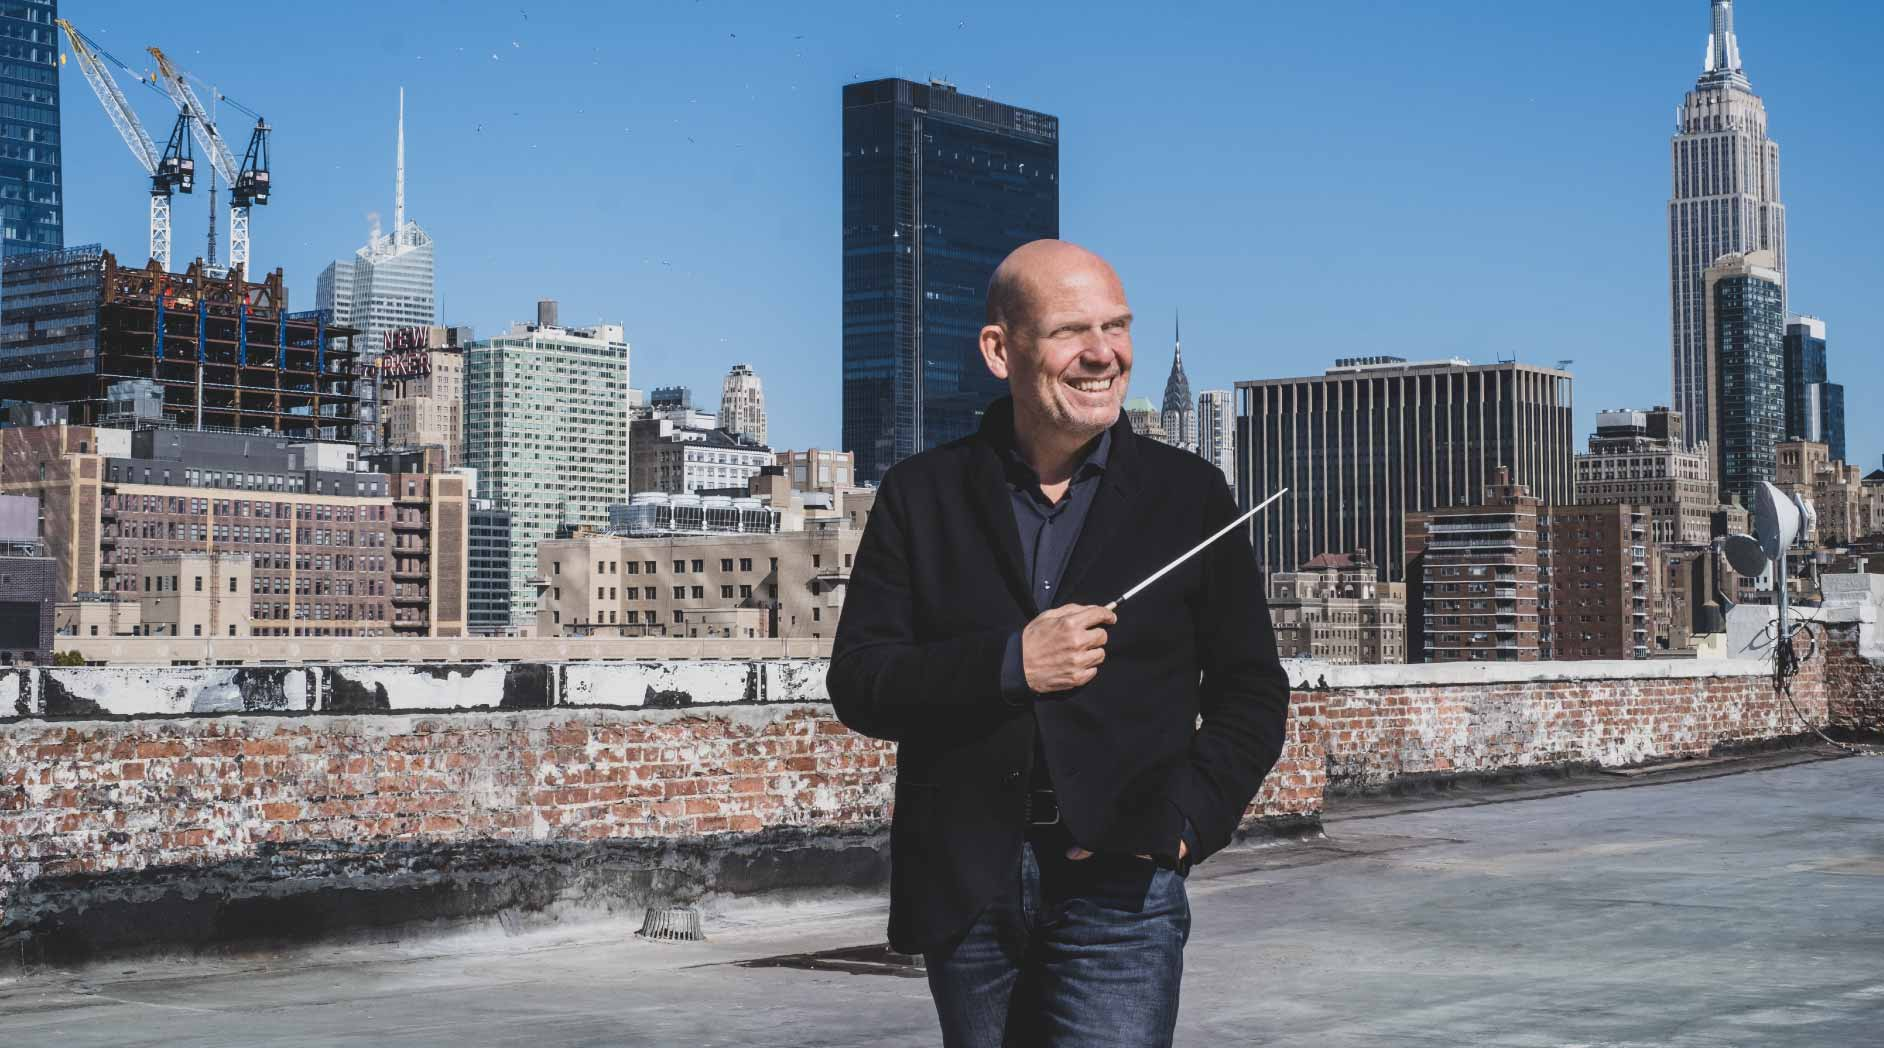 Music Director Jaap van Zweden holds a baton in front of a cityscape.